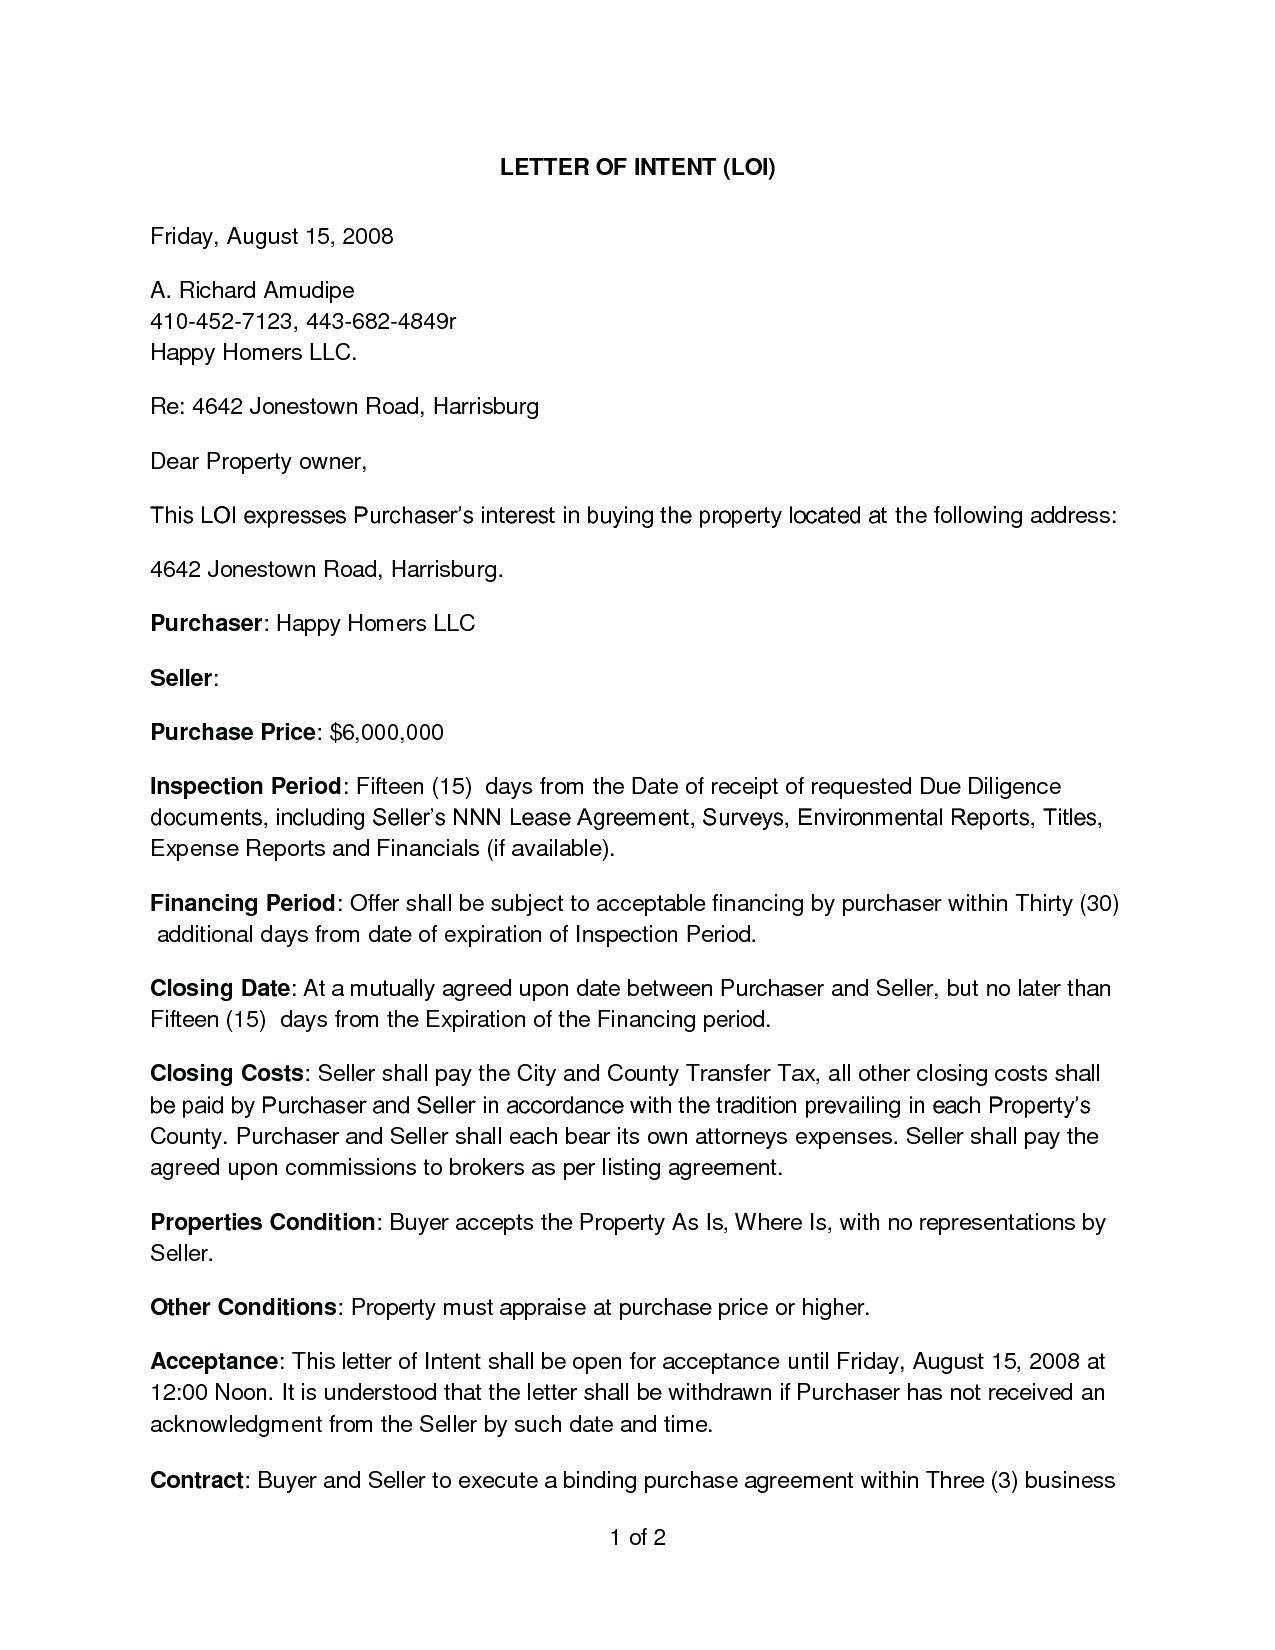 Property Purchase Offer Letter Template